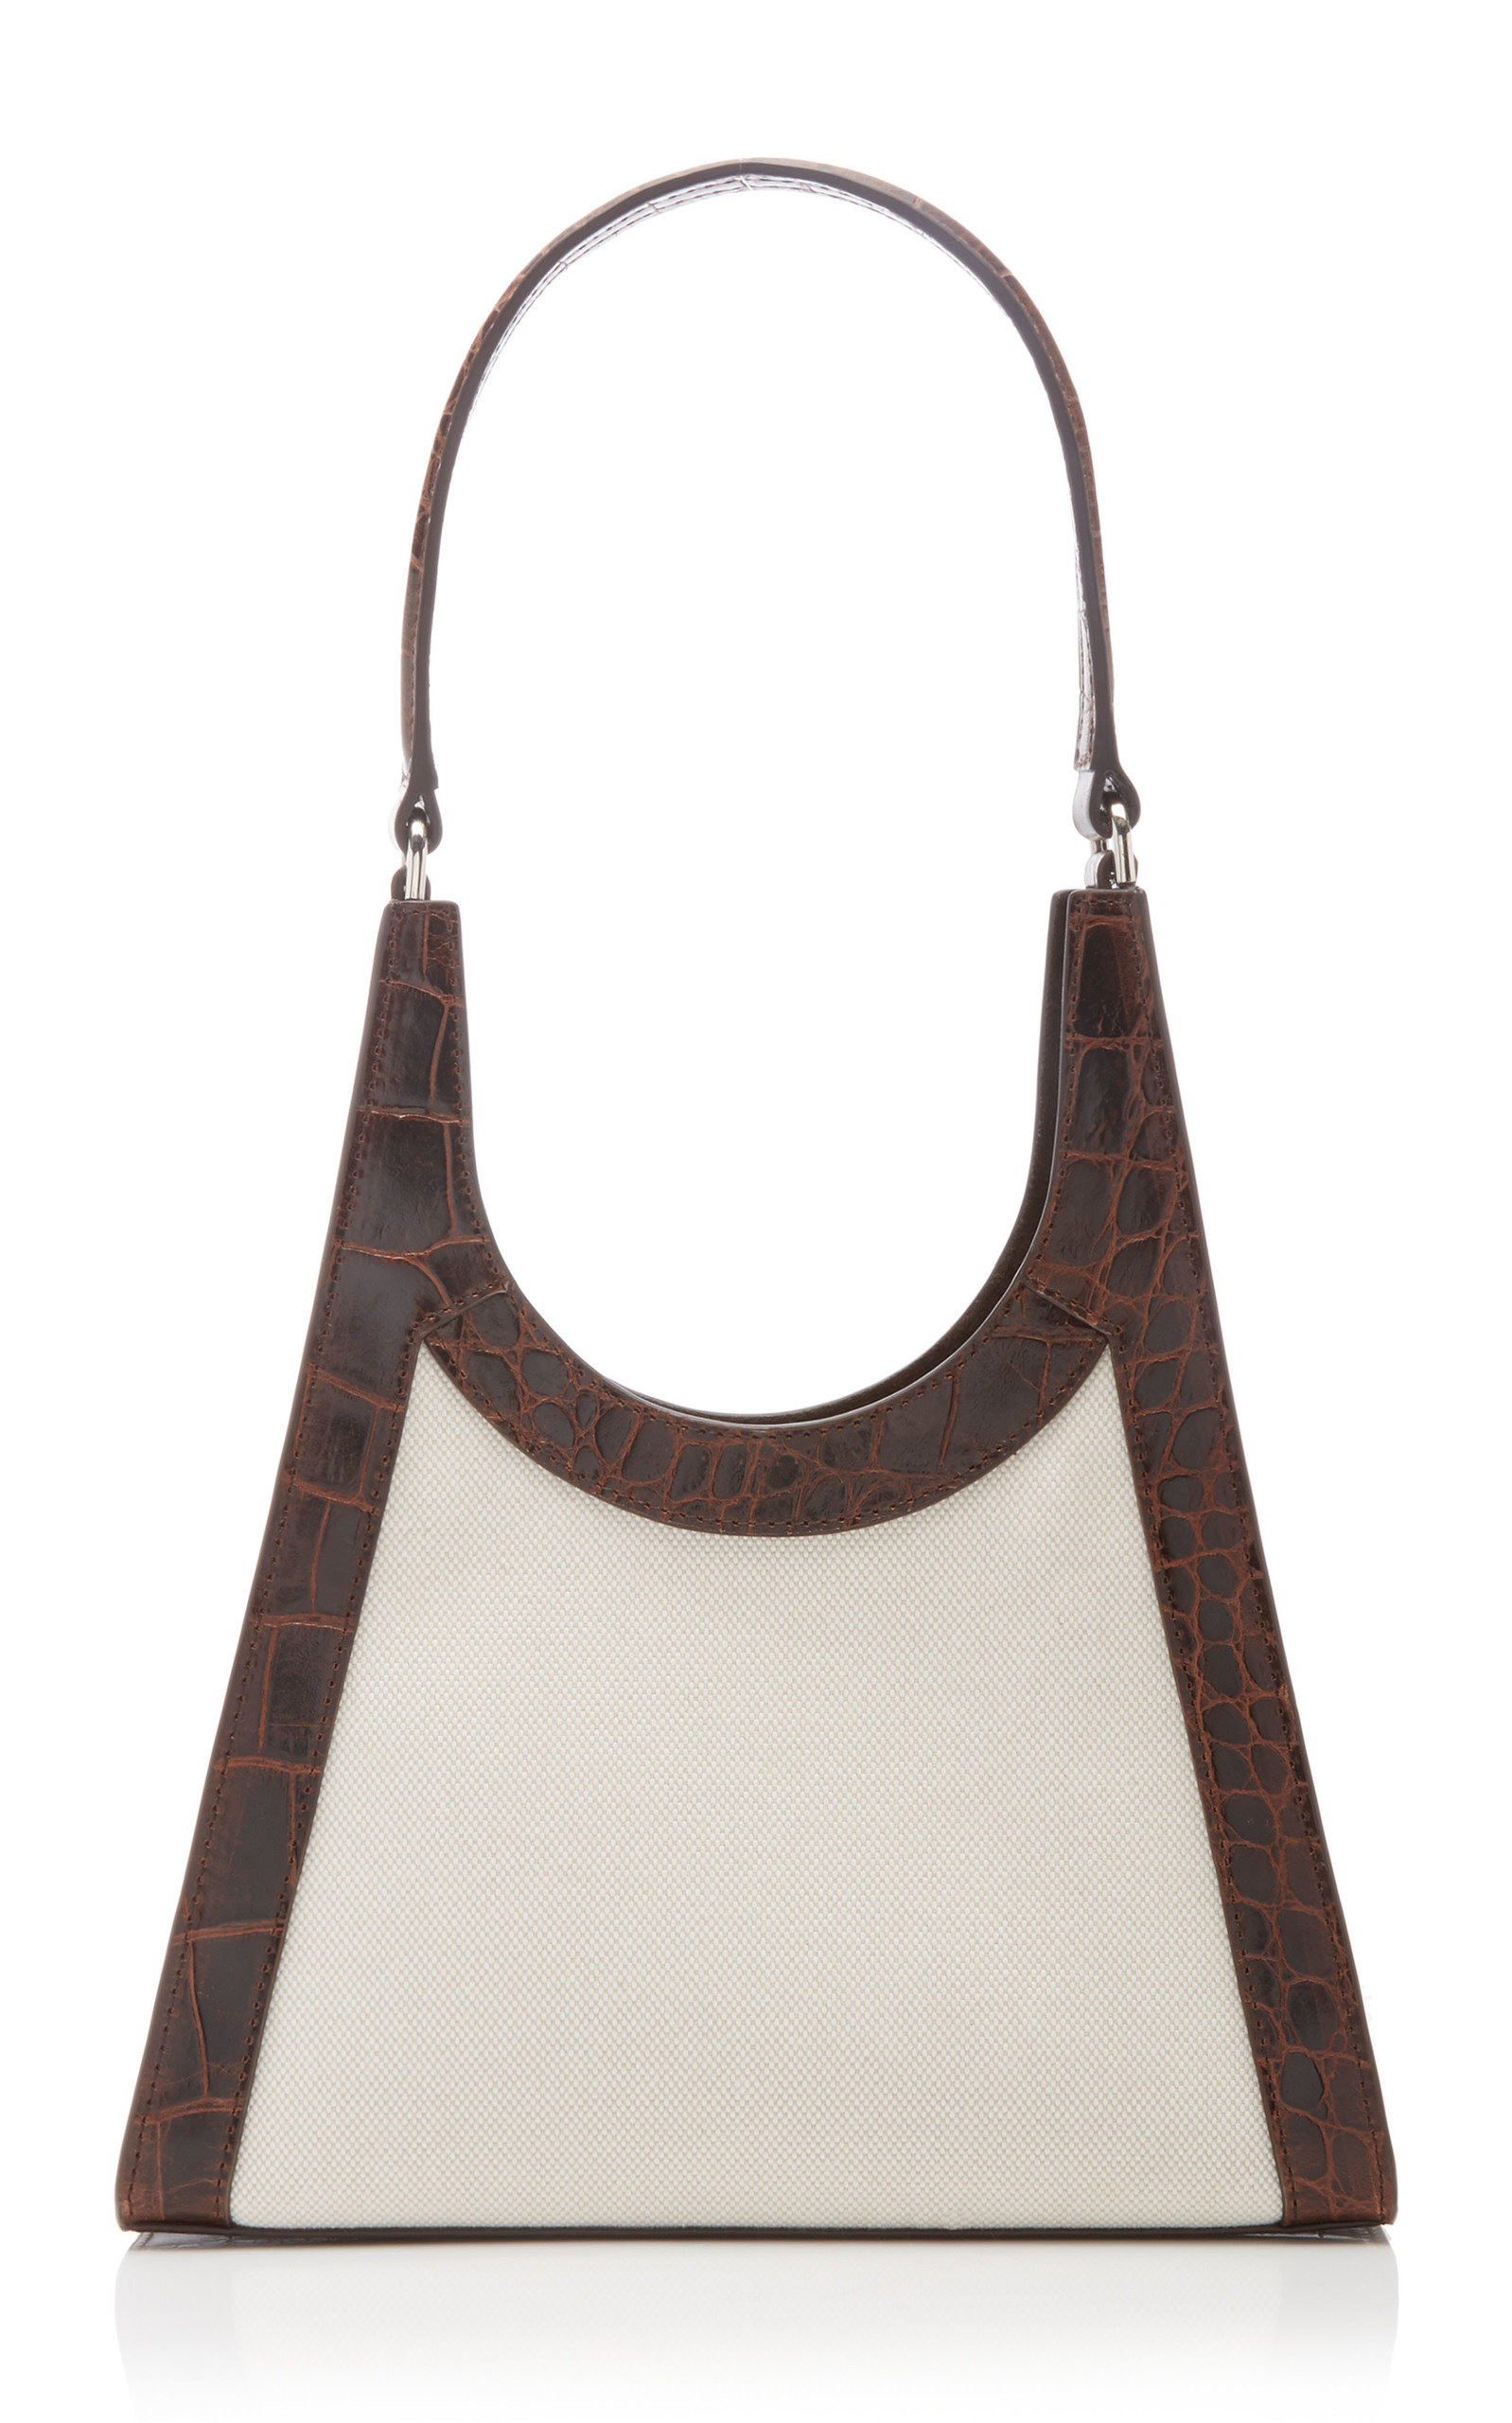 Staud REY CANVAS AND CROC-EFFECT LEATHER SHOULDER BAG